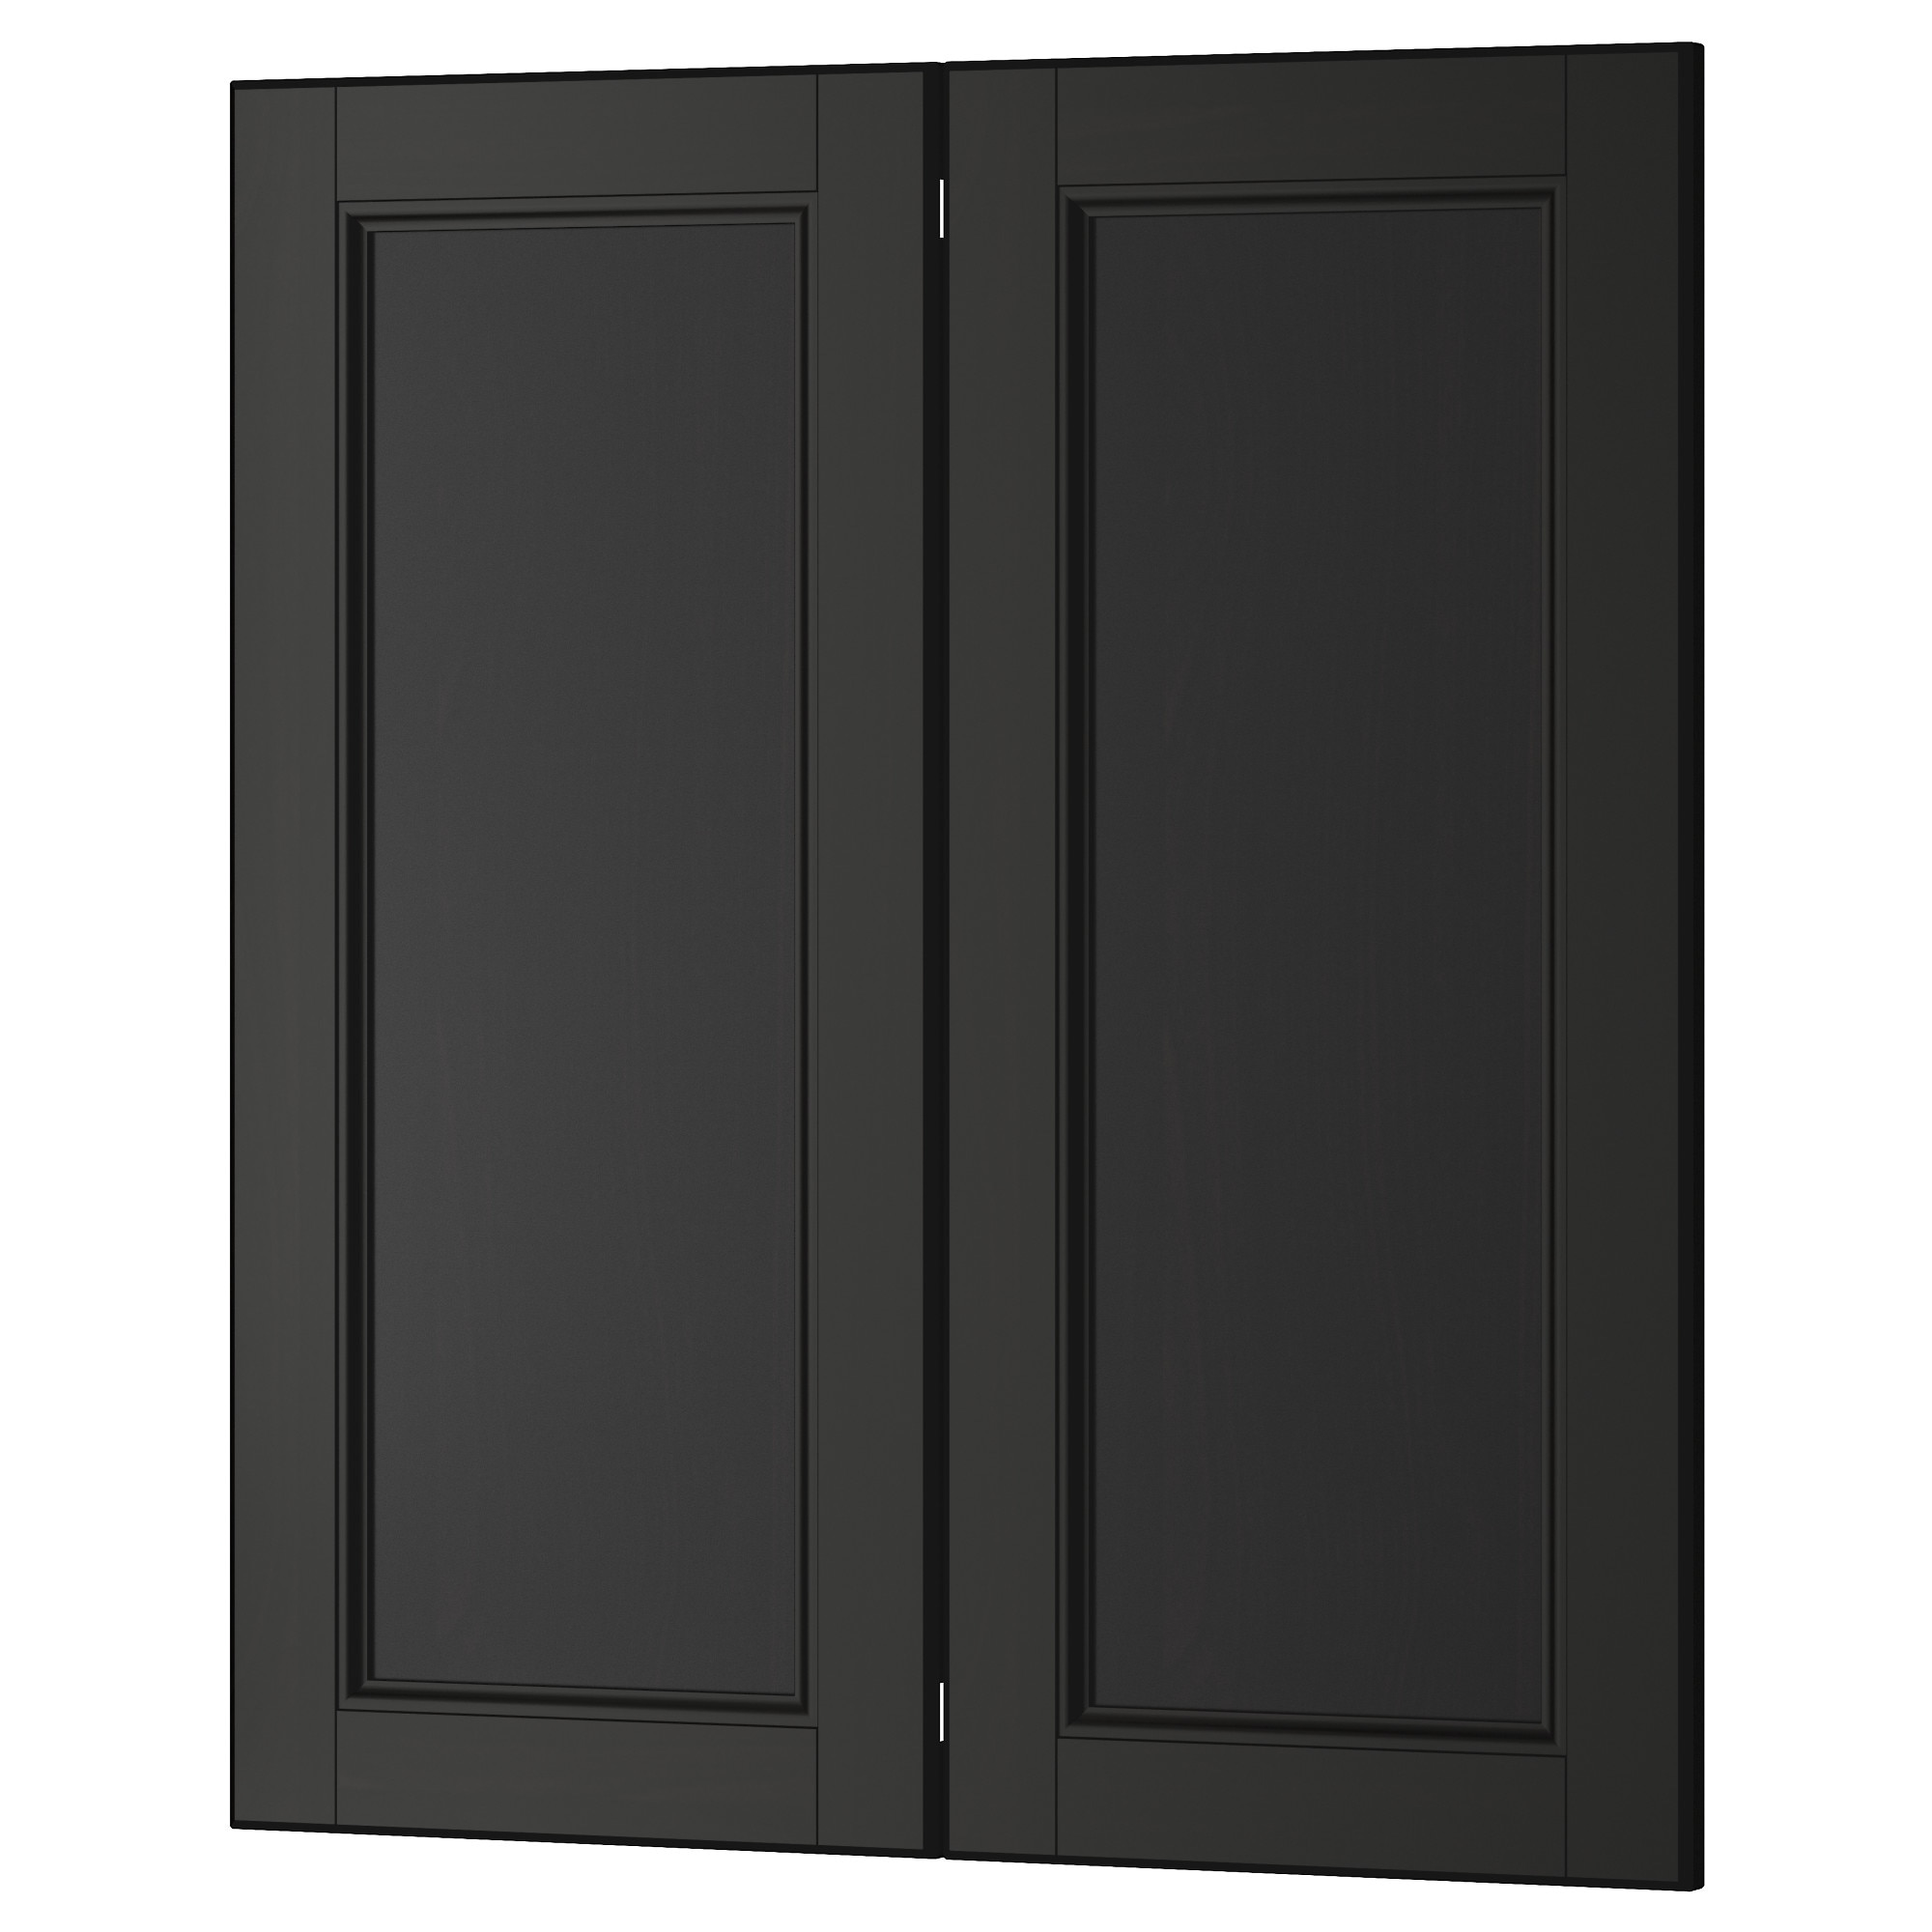 laxarby 2 p doorcorner base cabinet set black brown width - Ikea Black Kitchen Cabinets